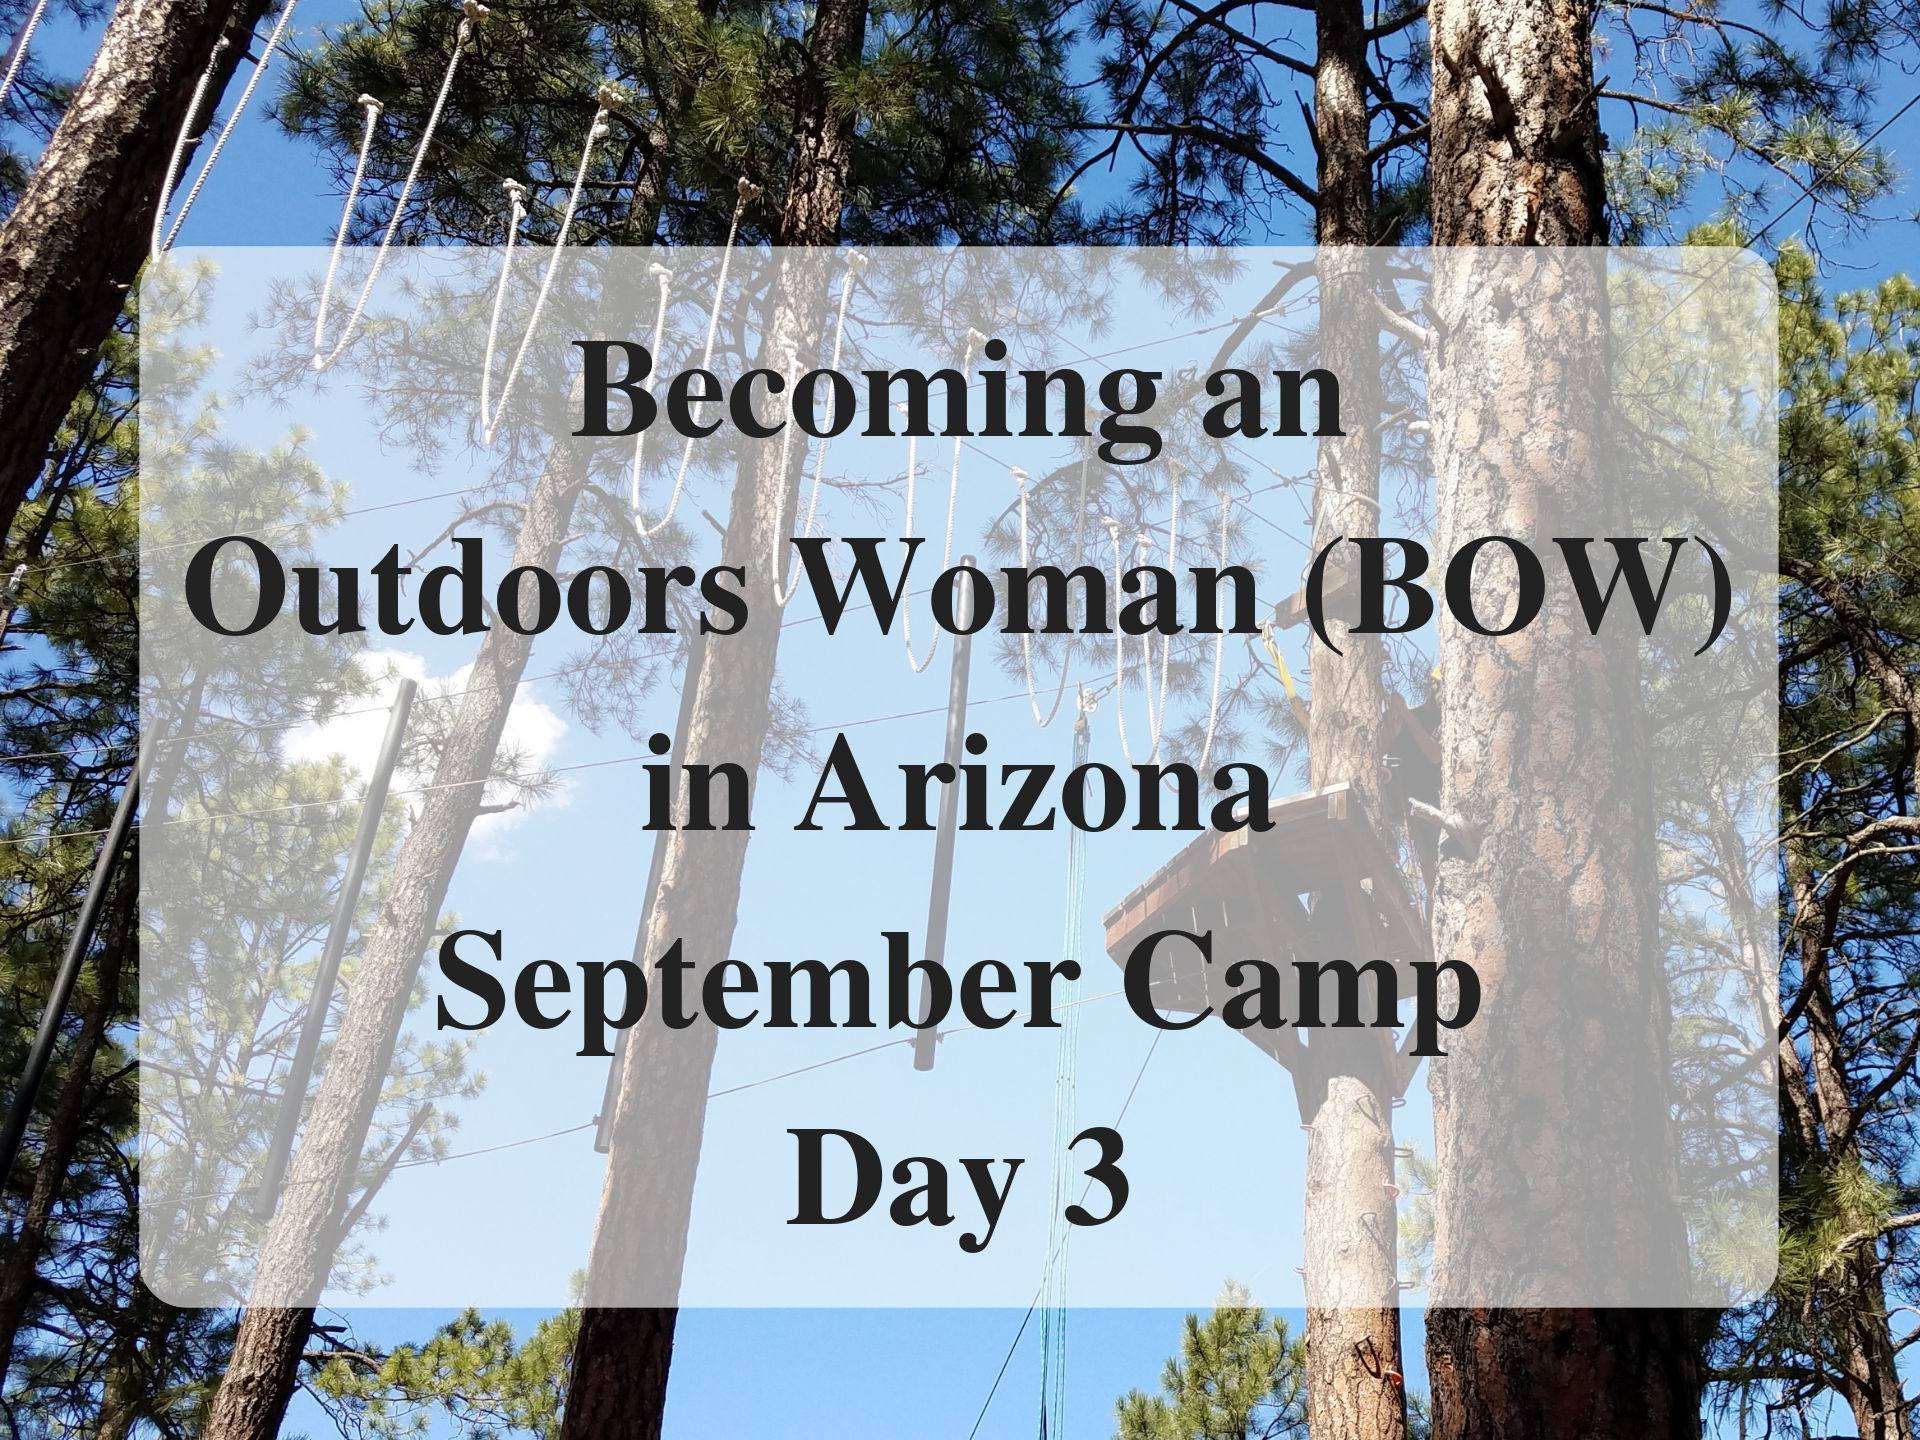 Main Becoming an Outdoors Woman (BOW) in Arizona September Camp Day 3